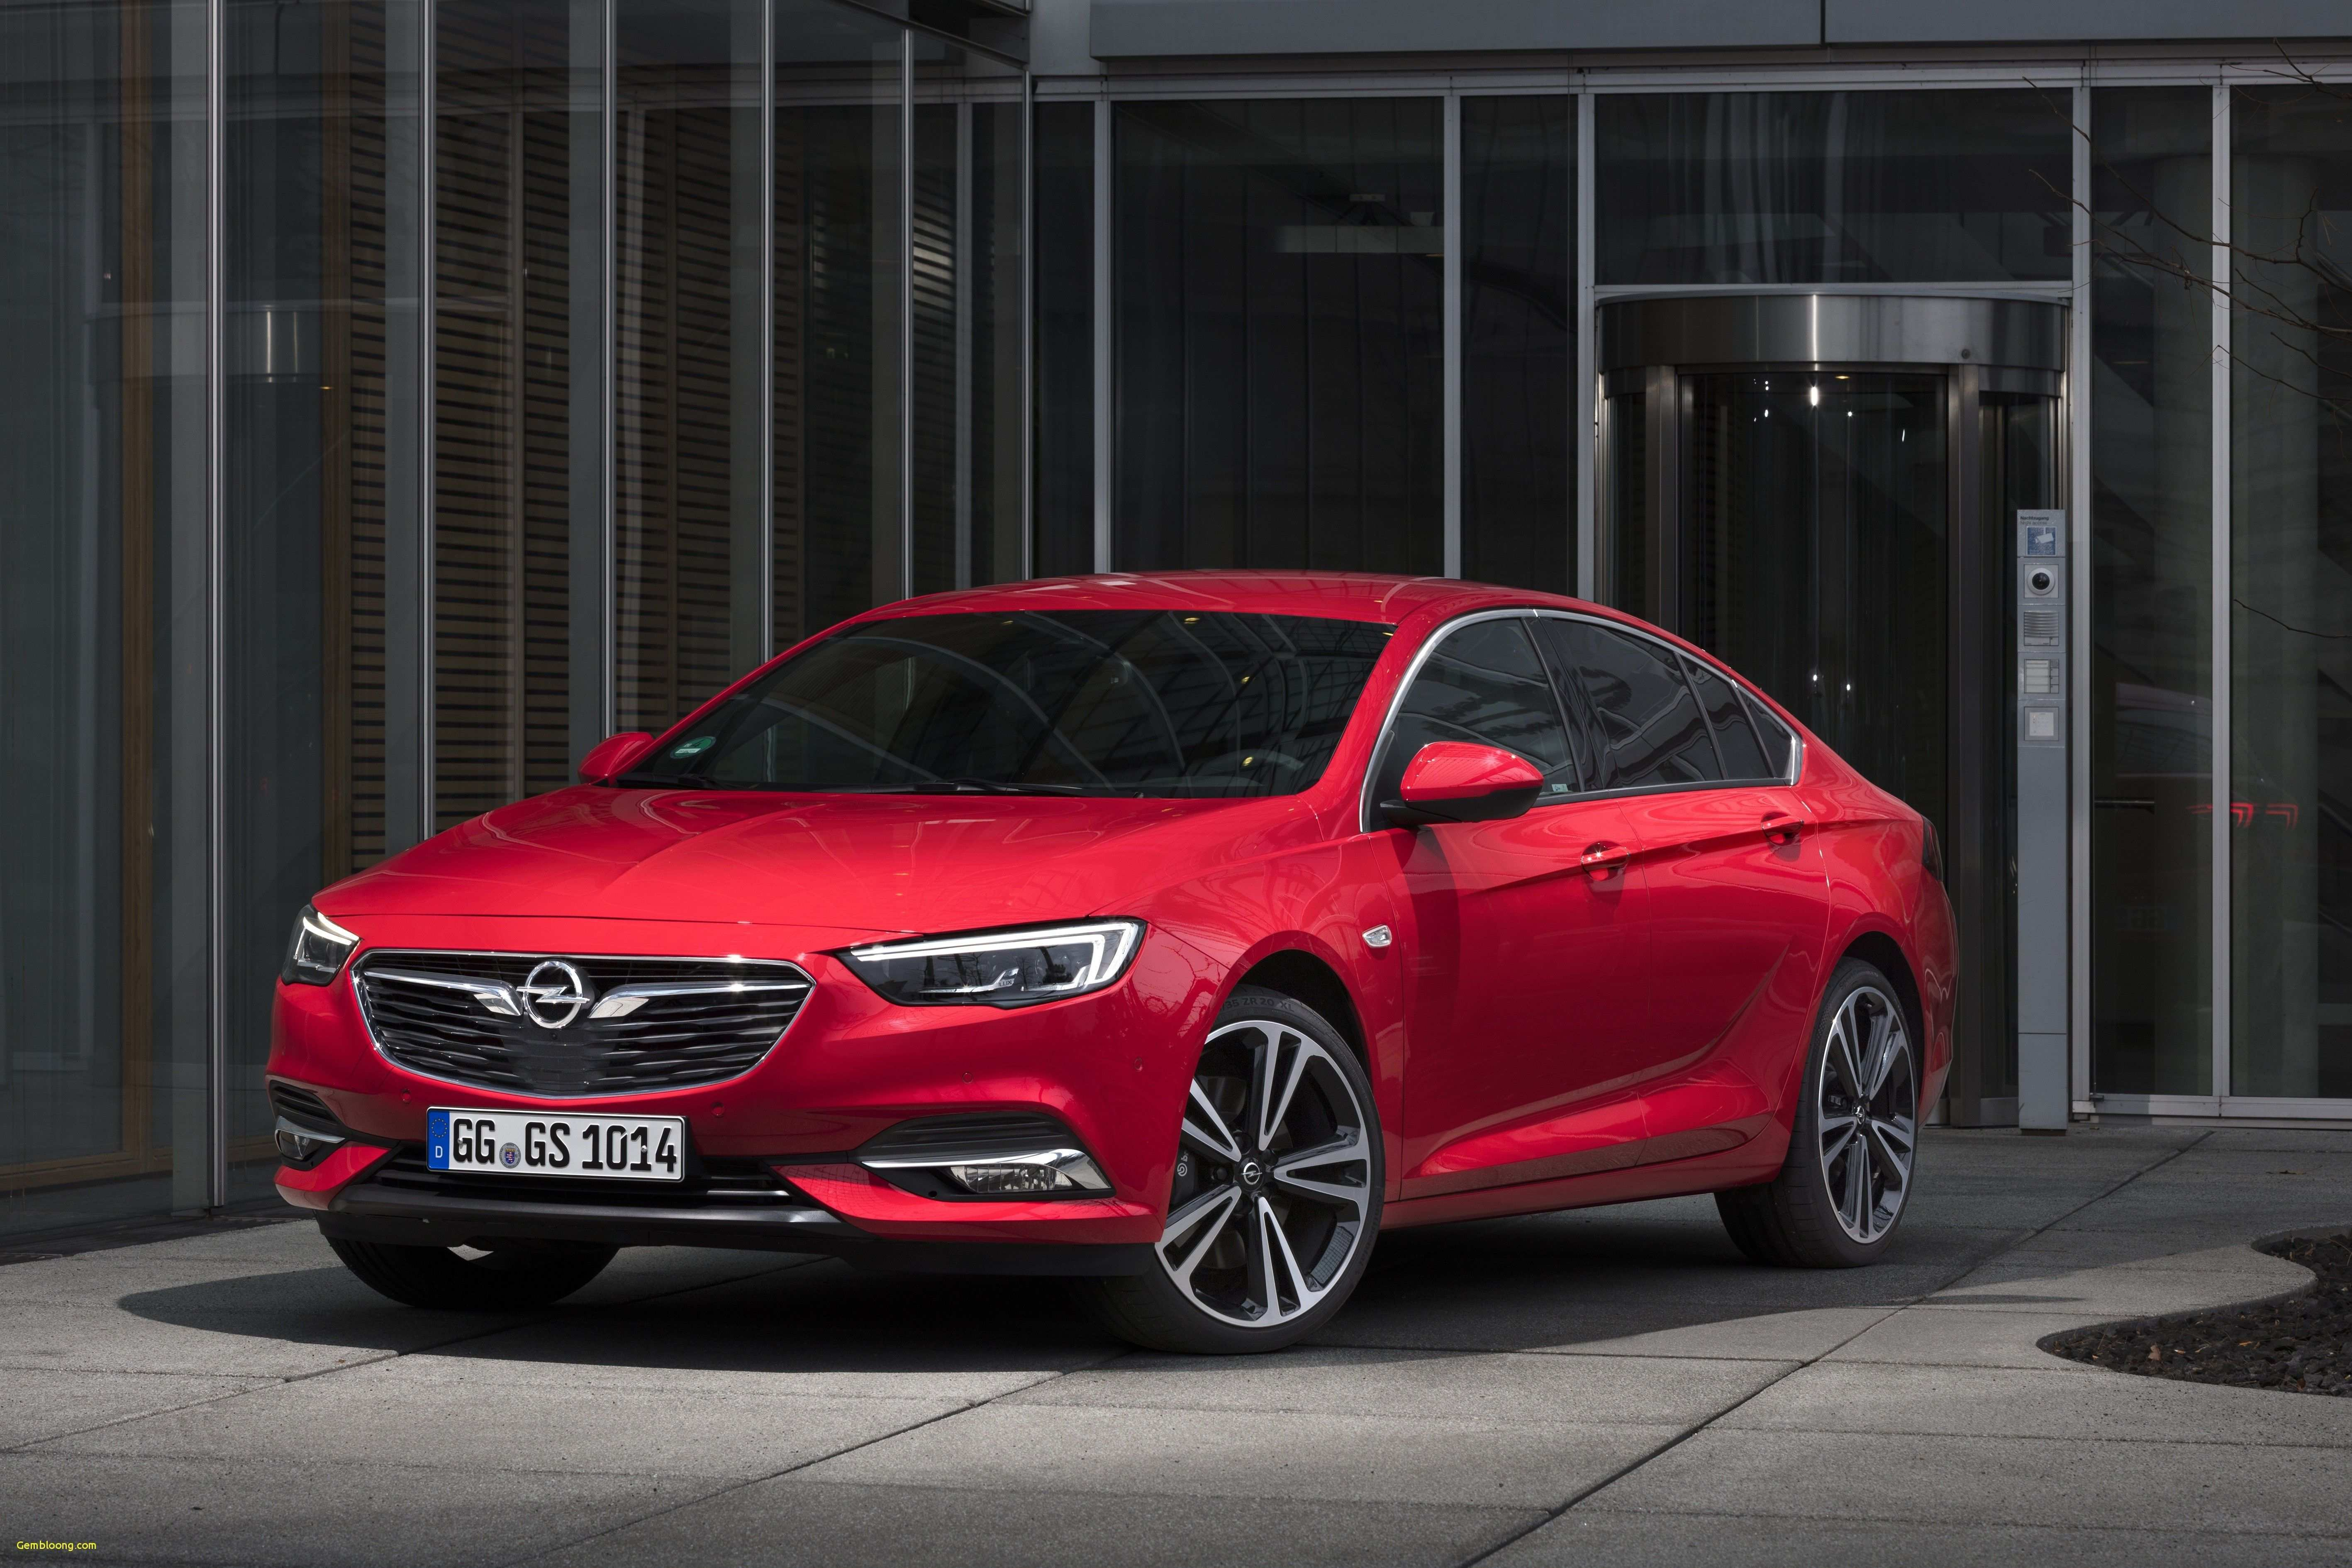 82 Concept of 2020 New Opel Insignia 2018 Style for 2020 New Opel Insignia 2018